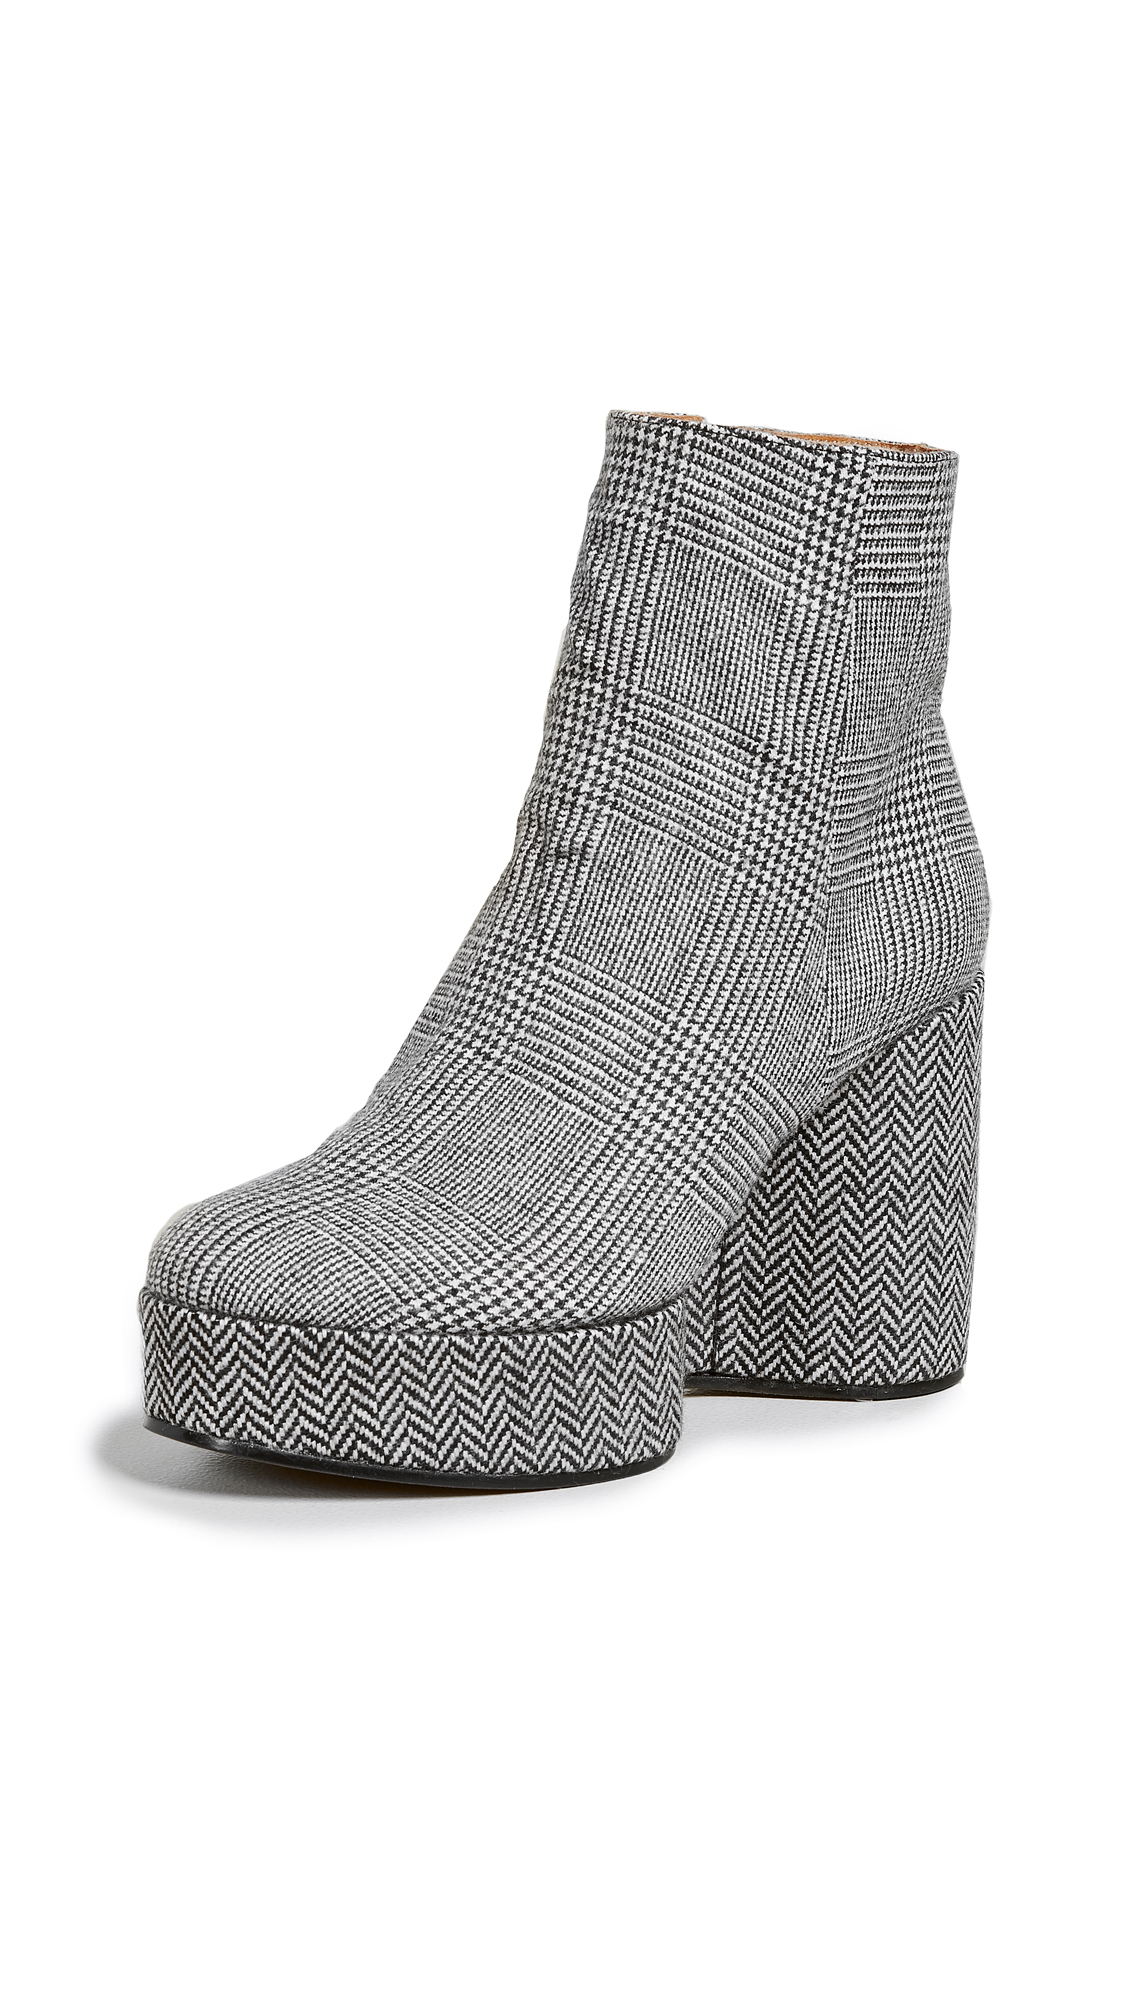 Robert Clergerie Belent Platform Booties - Plaid